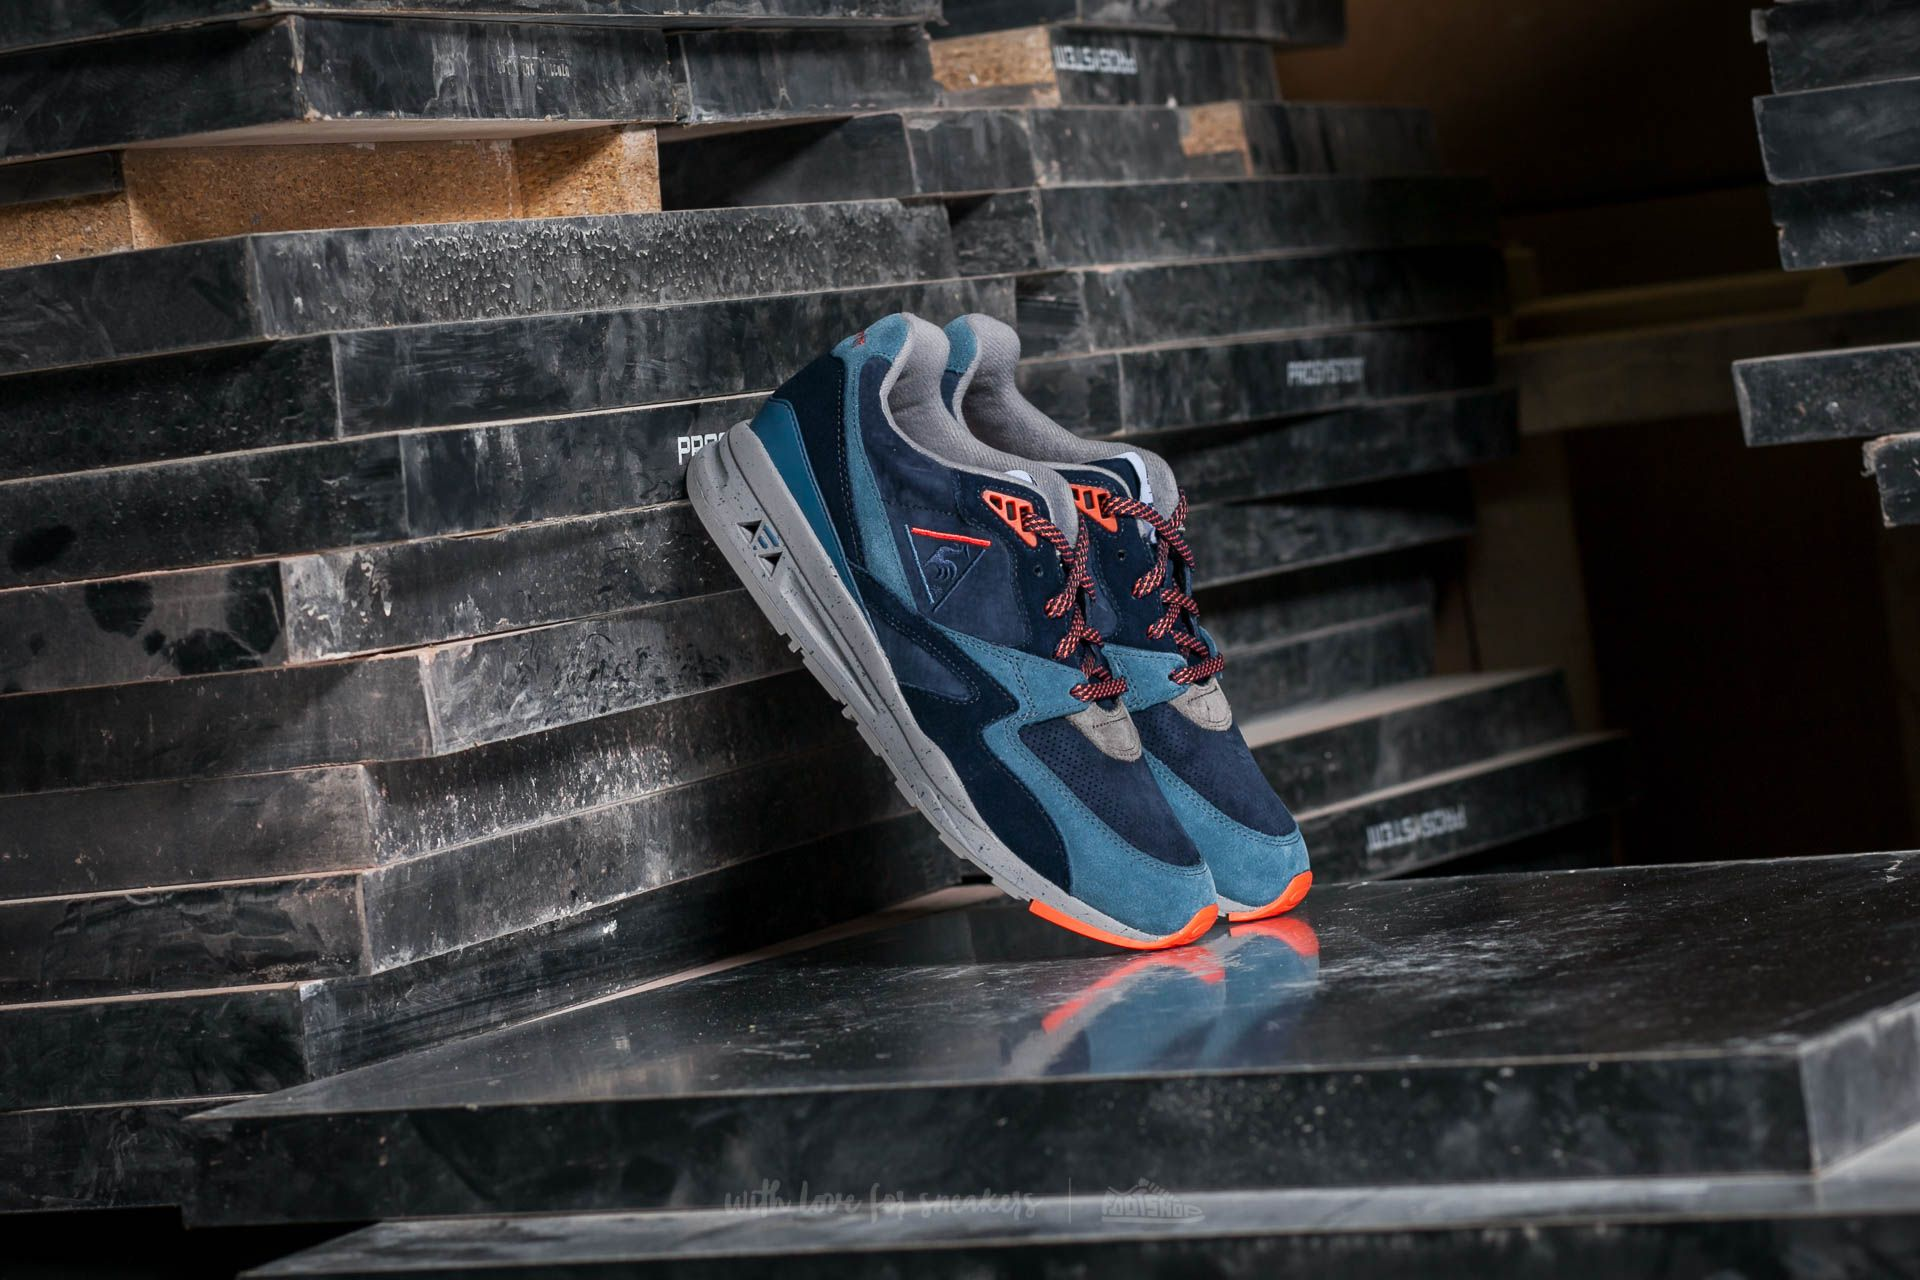 Le Coq Sportif R 800 90´S Outdoor Dress Blue/ Tigerl